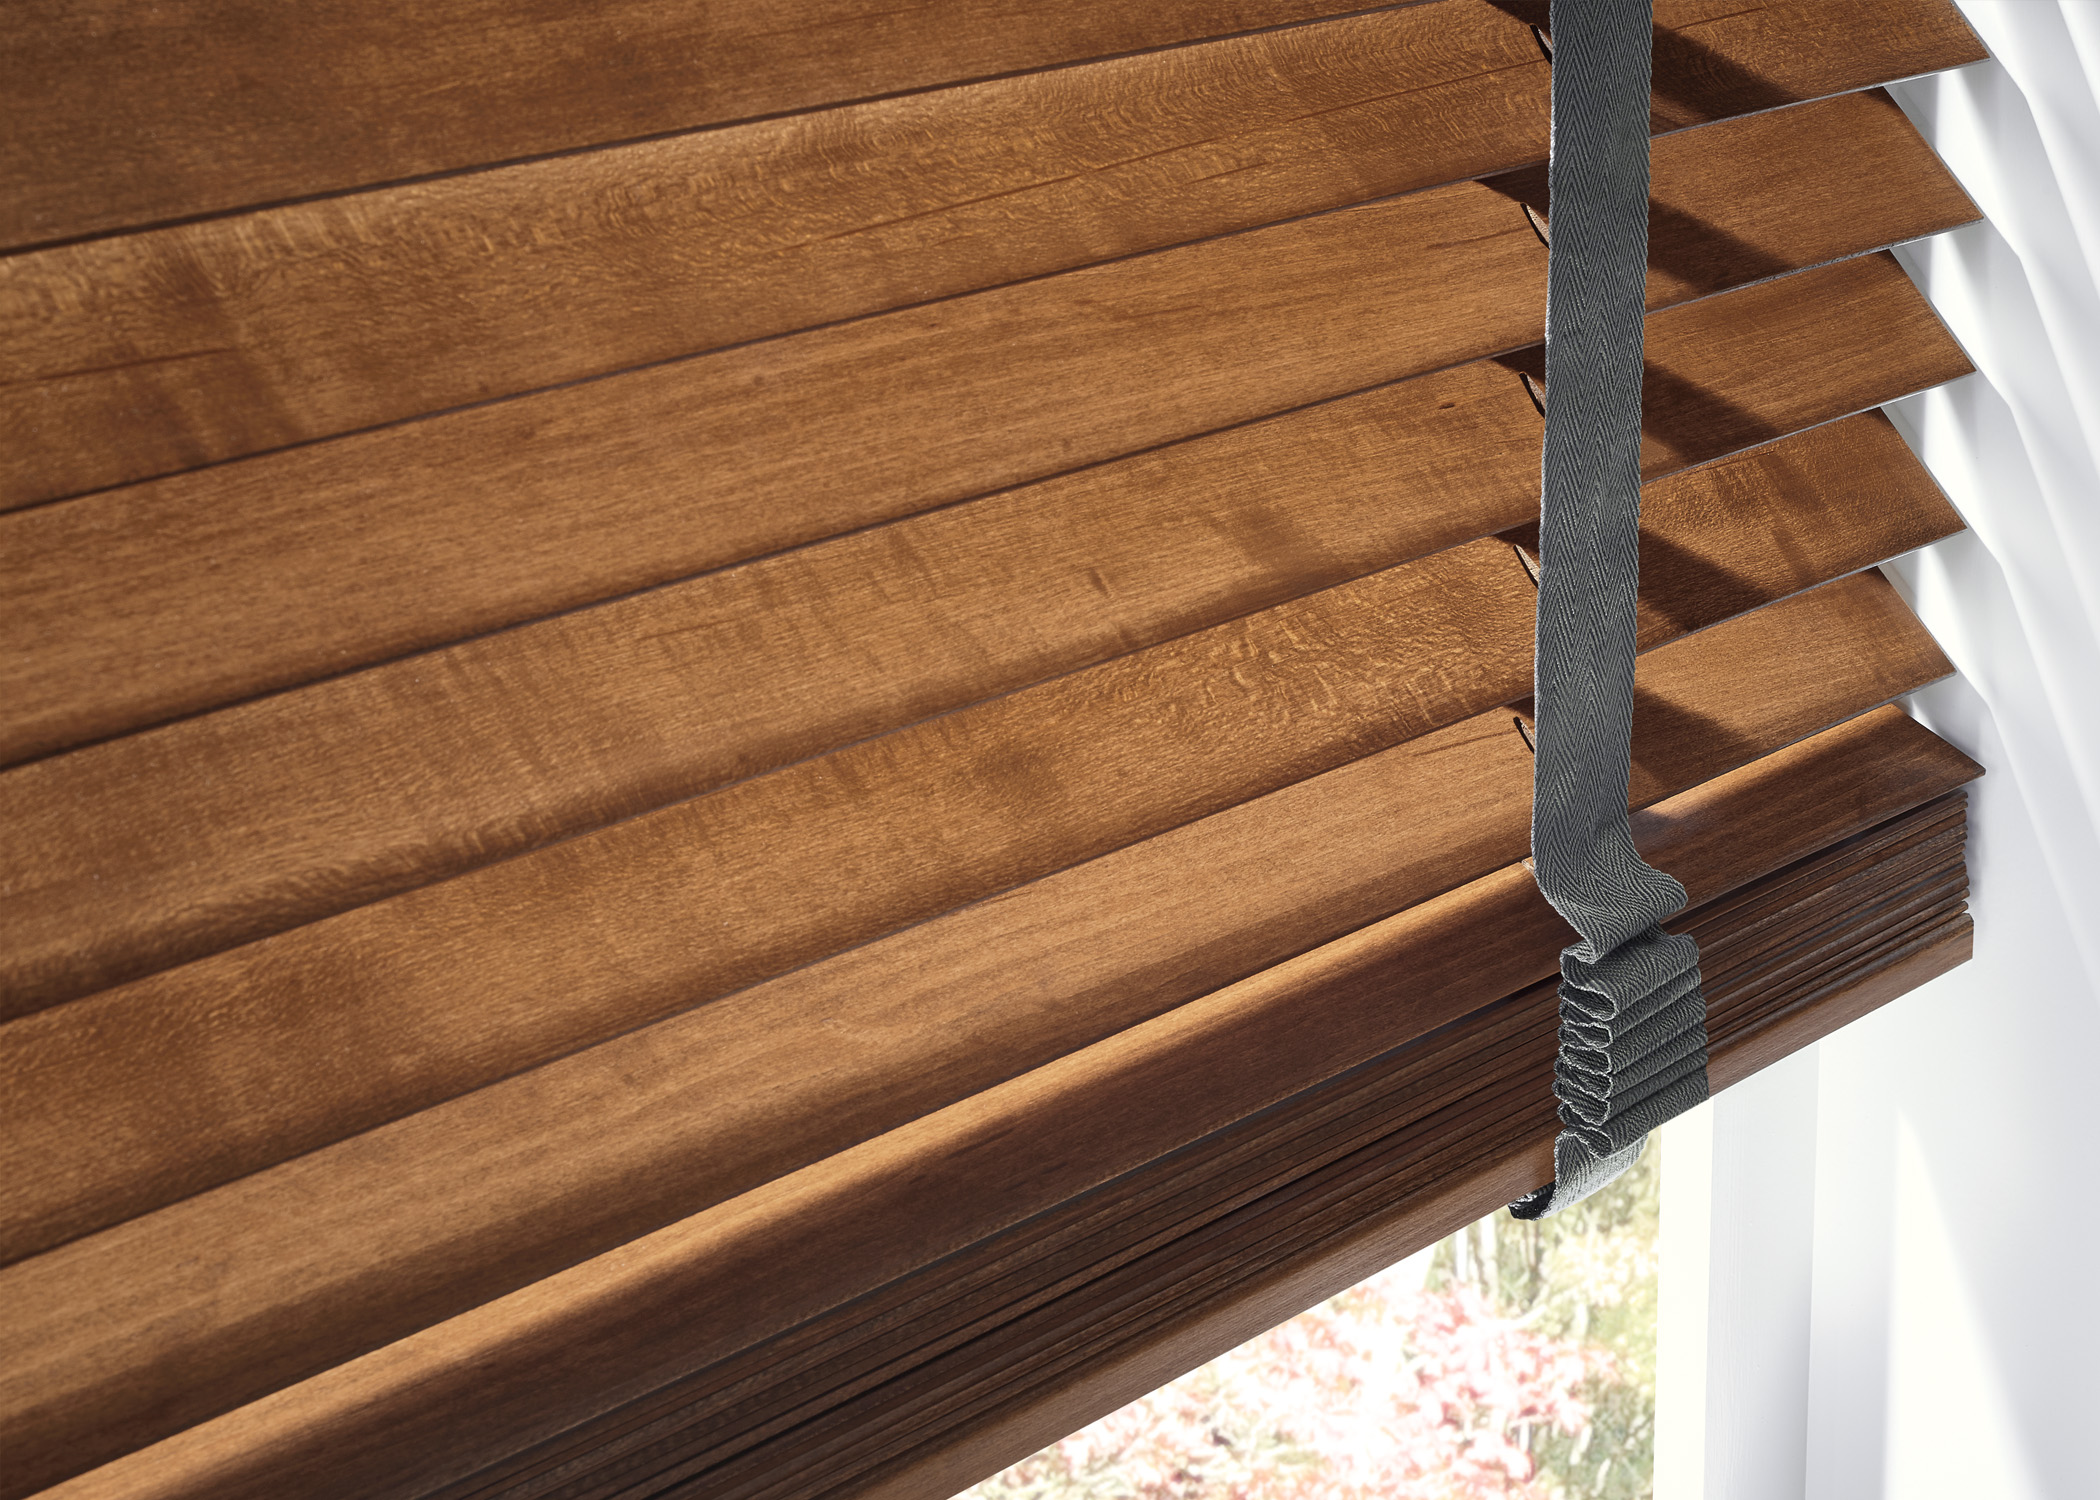 Graber_Wood Blinds_CloseUp1.jpg